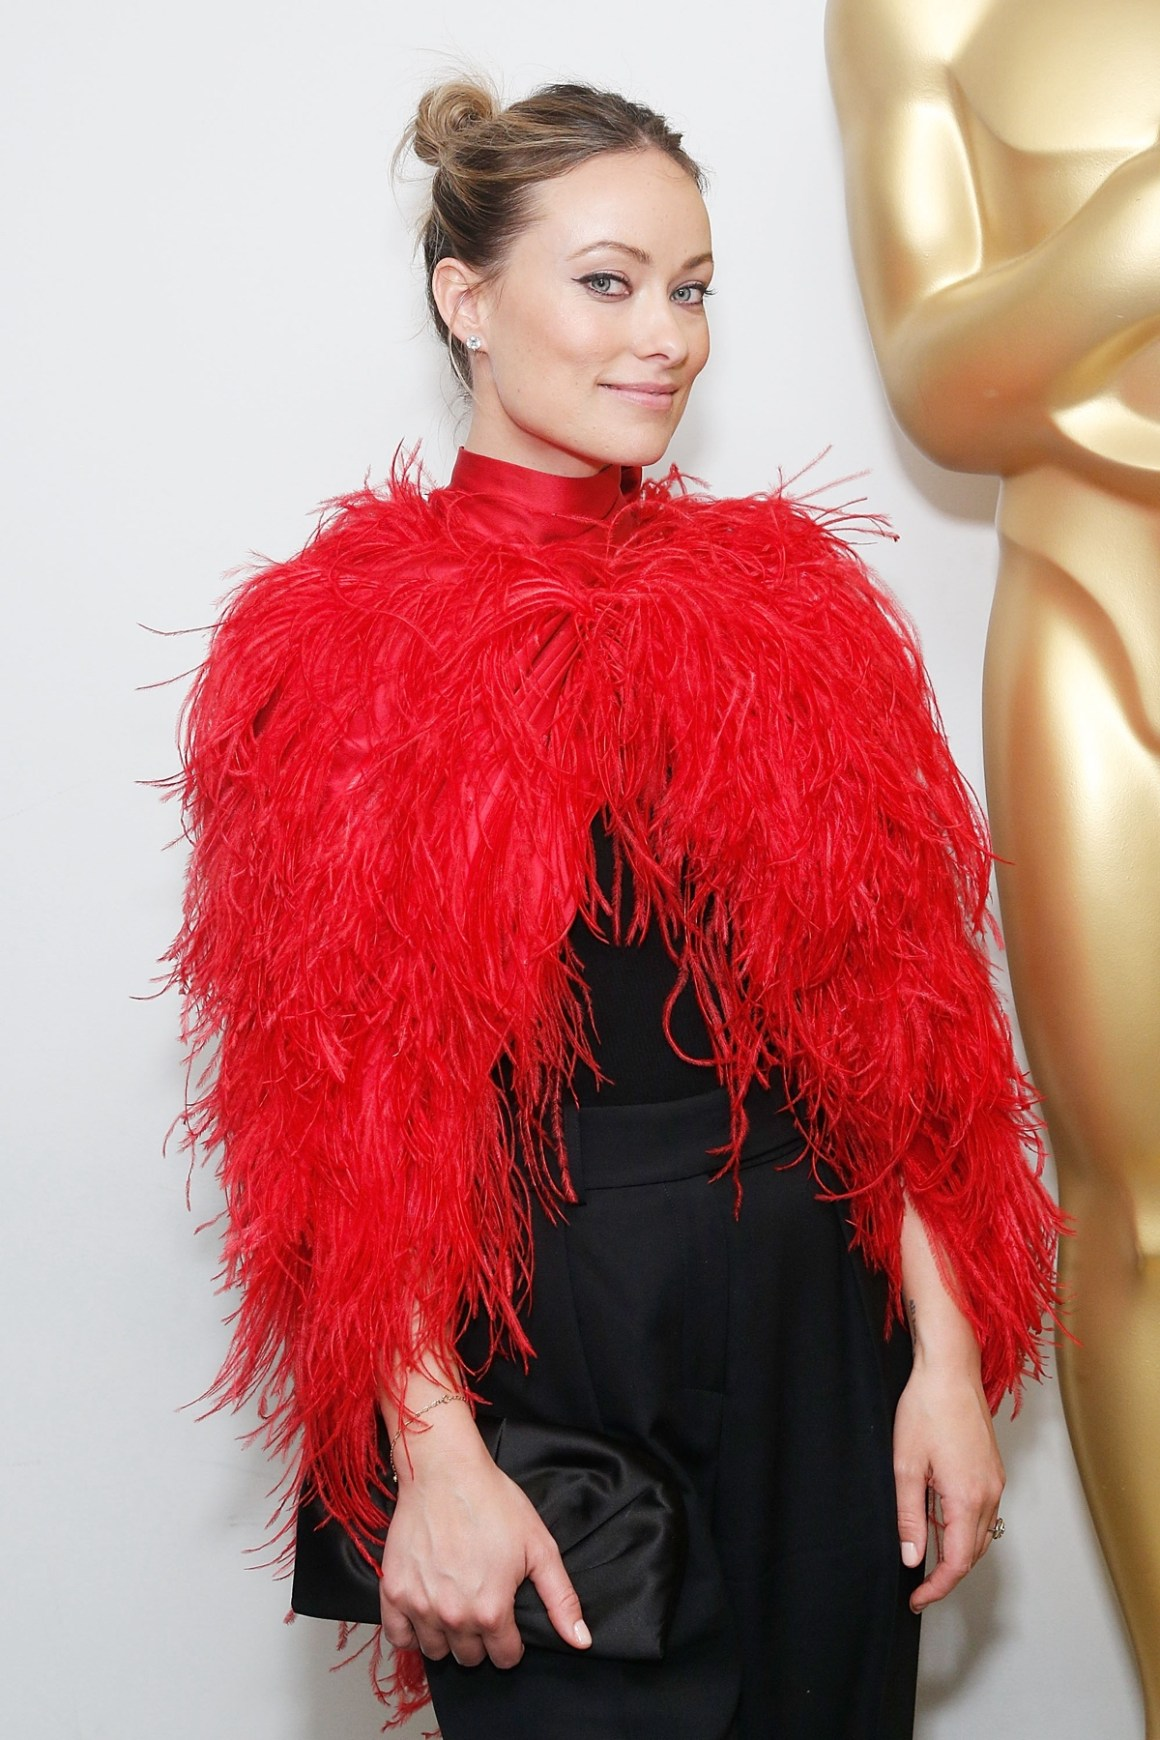 Olivia Wilde The Academy Of Motion Picture Arts & Sciences Hosts An Official Academy Screening Of Booksmart